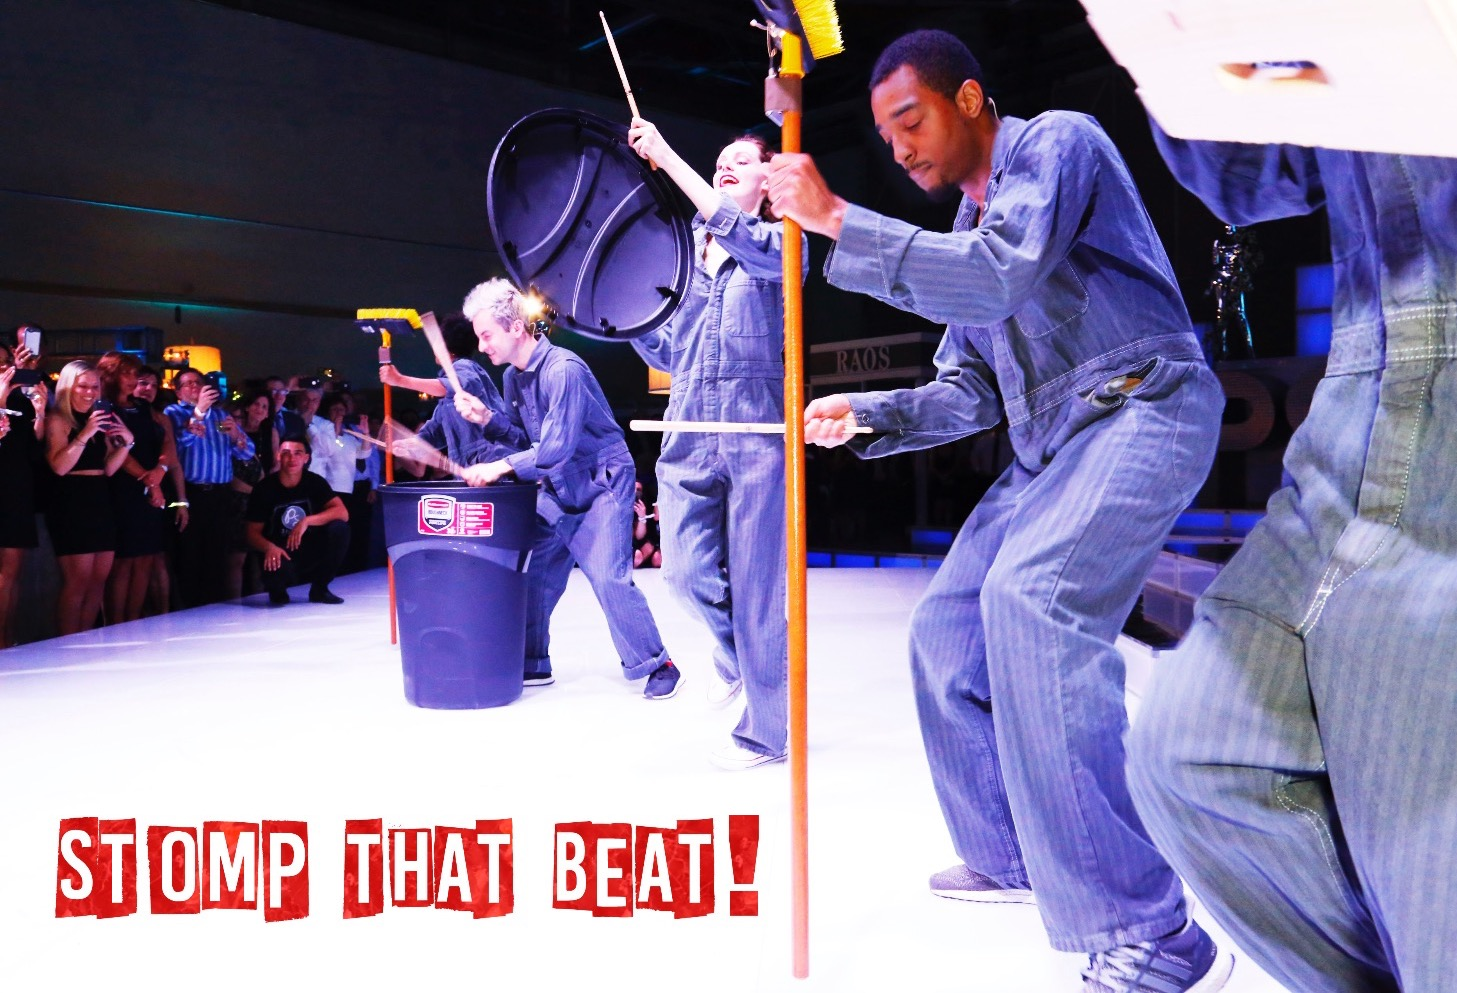 STOMP THAT BEAT